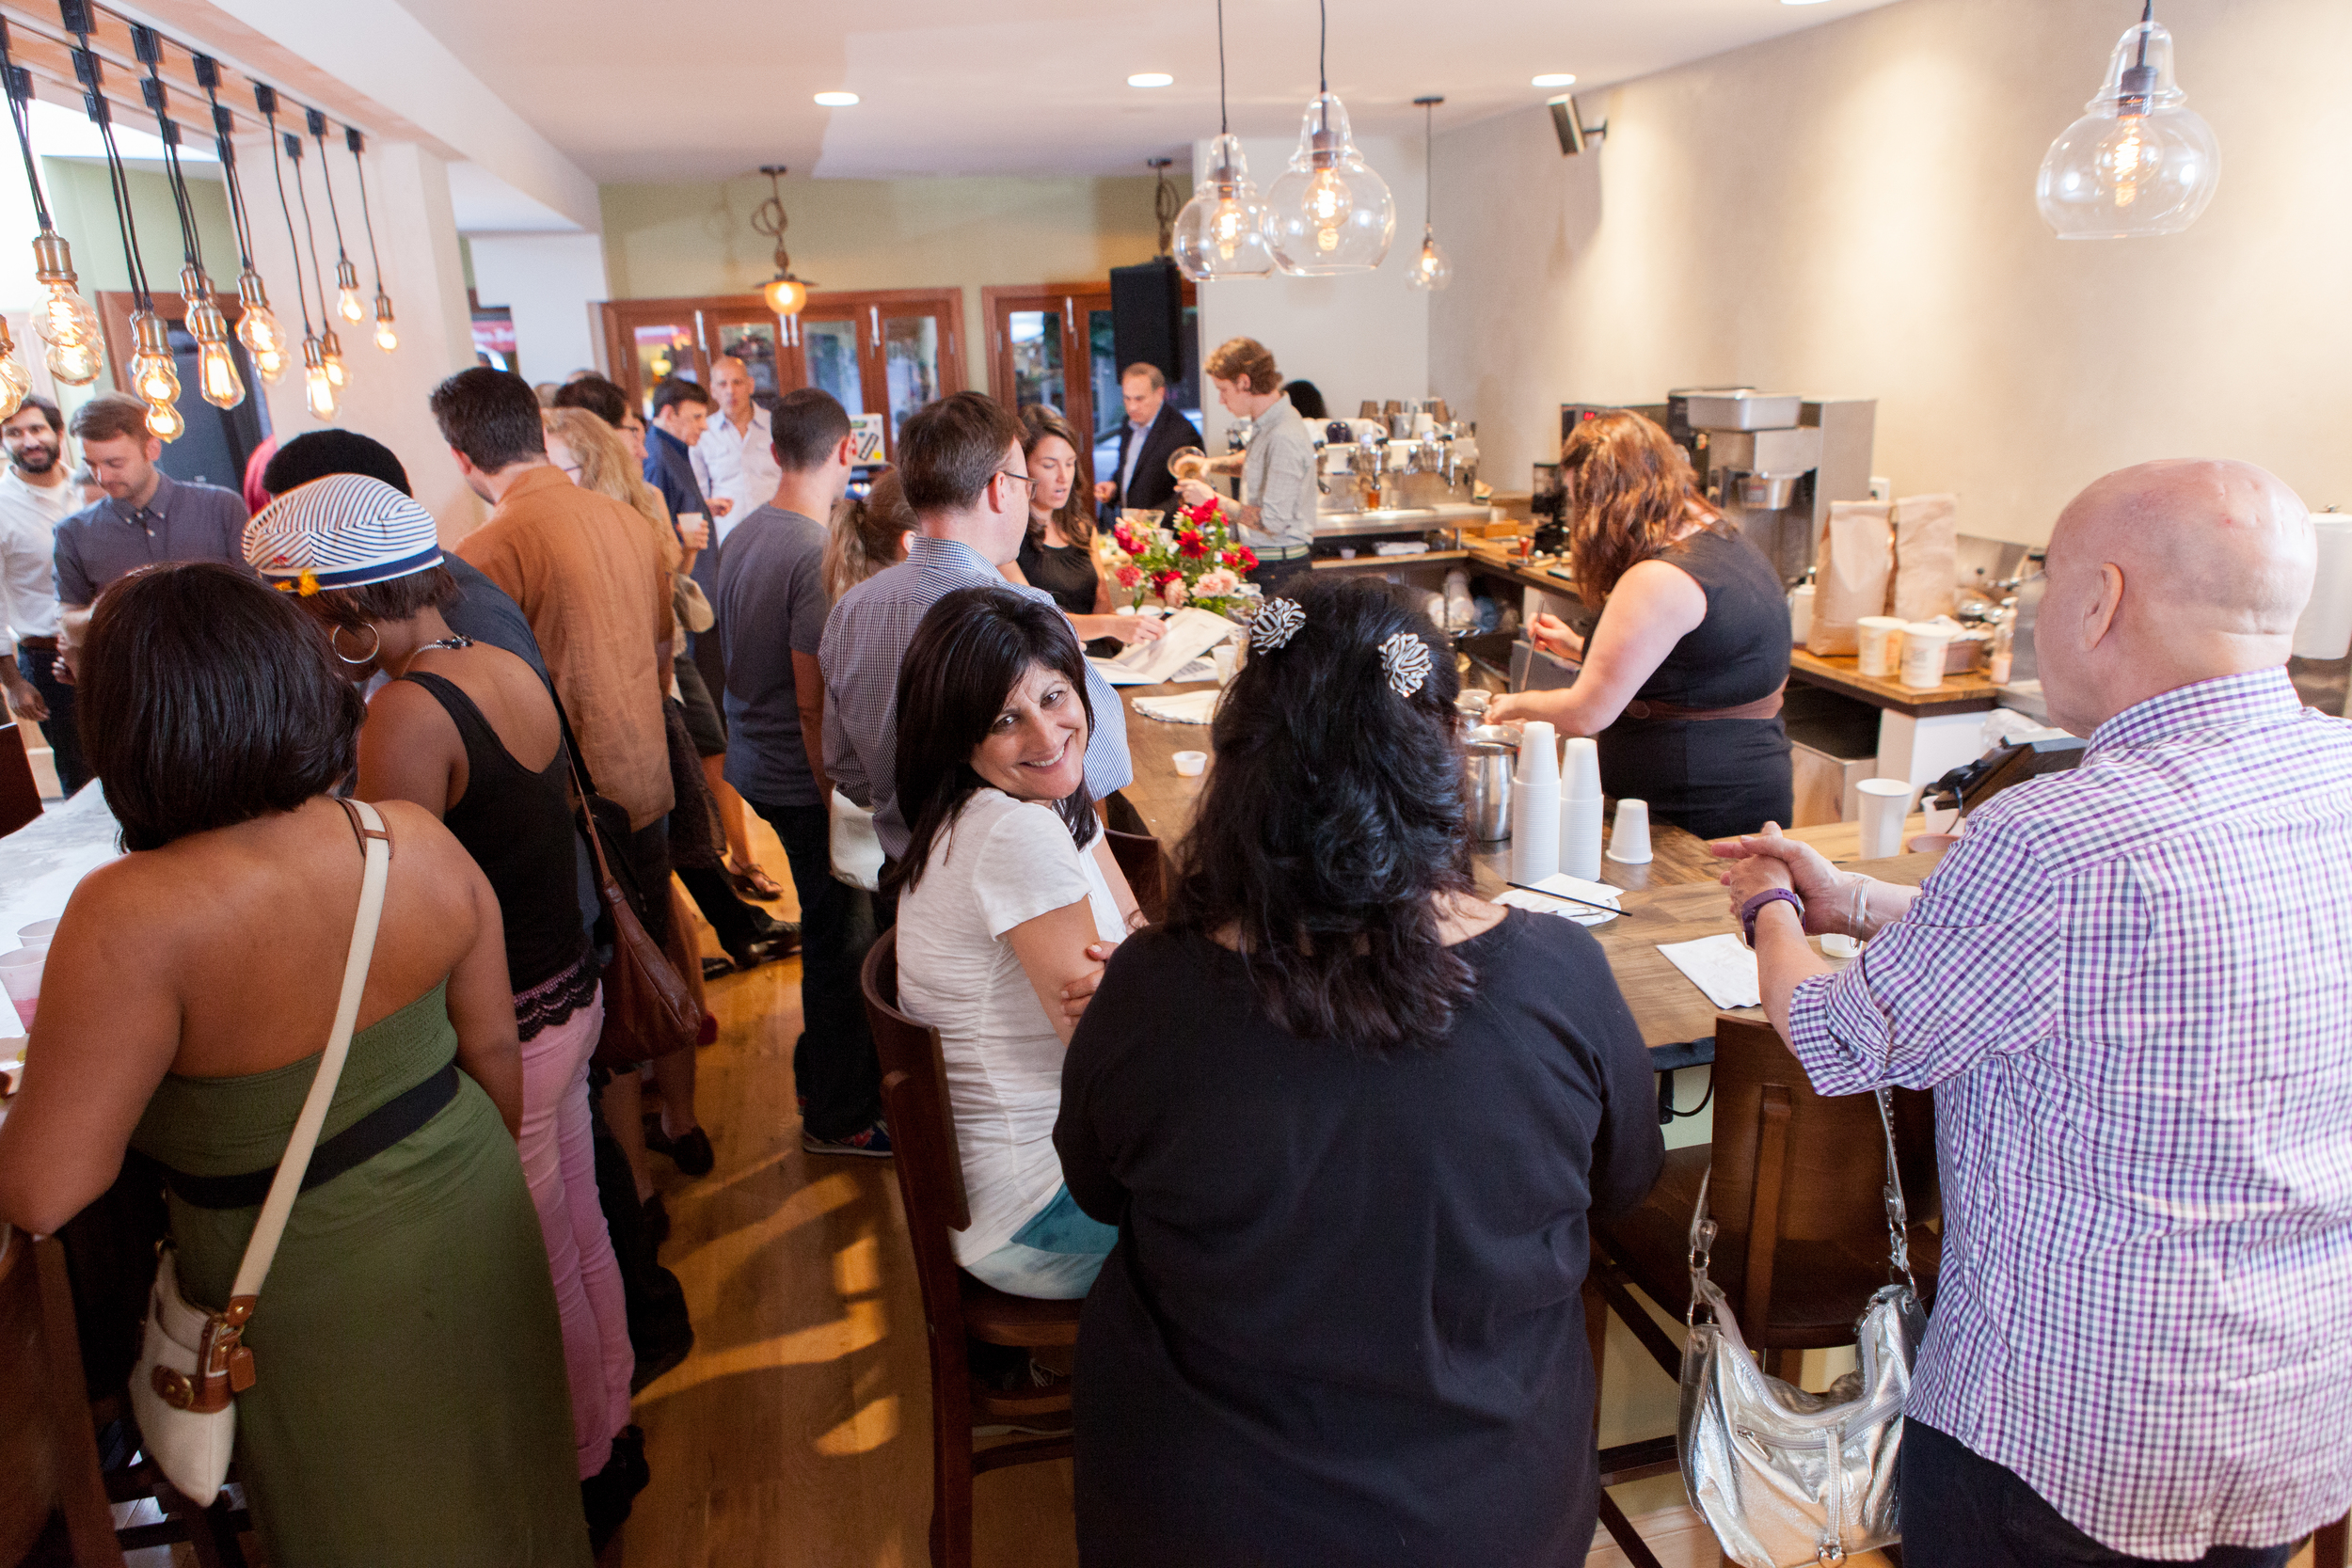 Chhaya, Cafe, East Passyunk, Brunch, Grand Opening, 2